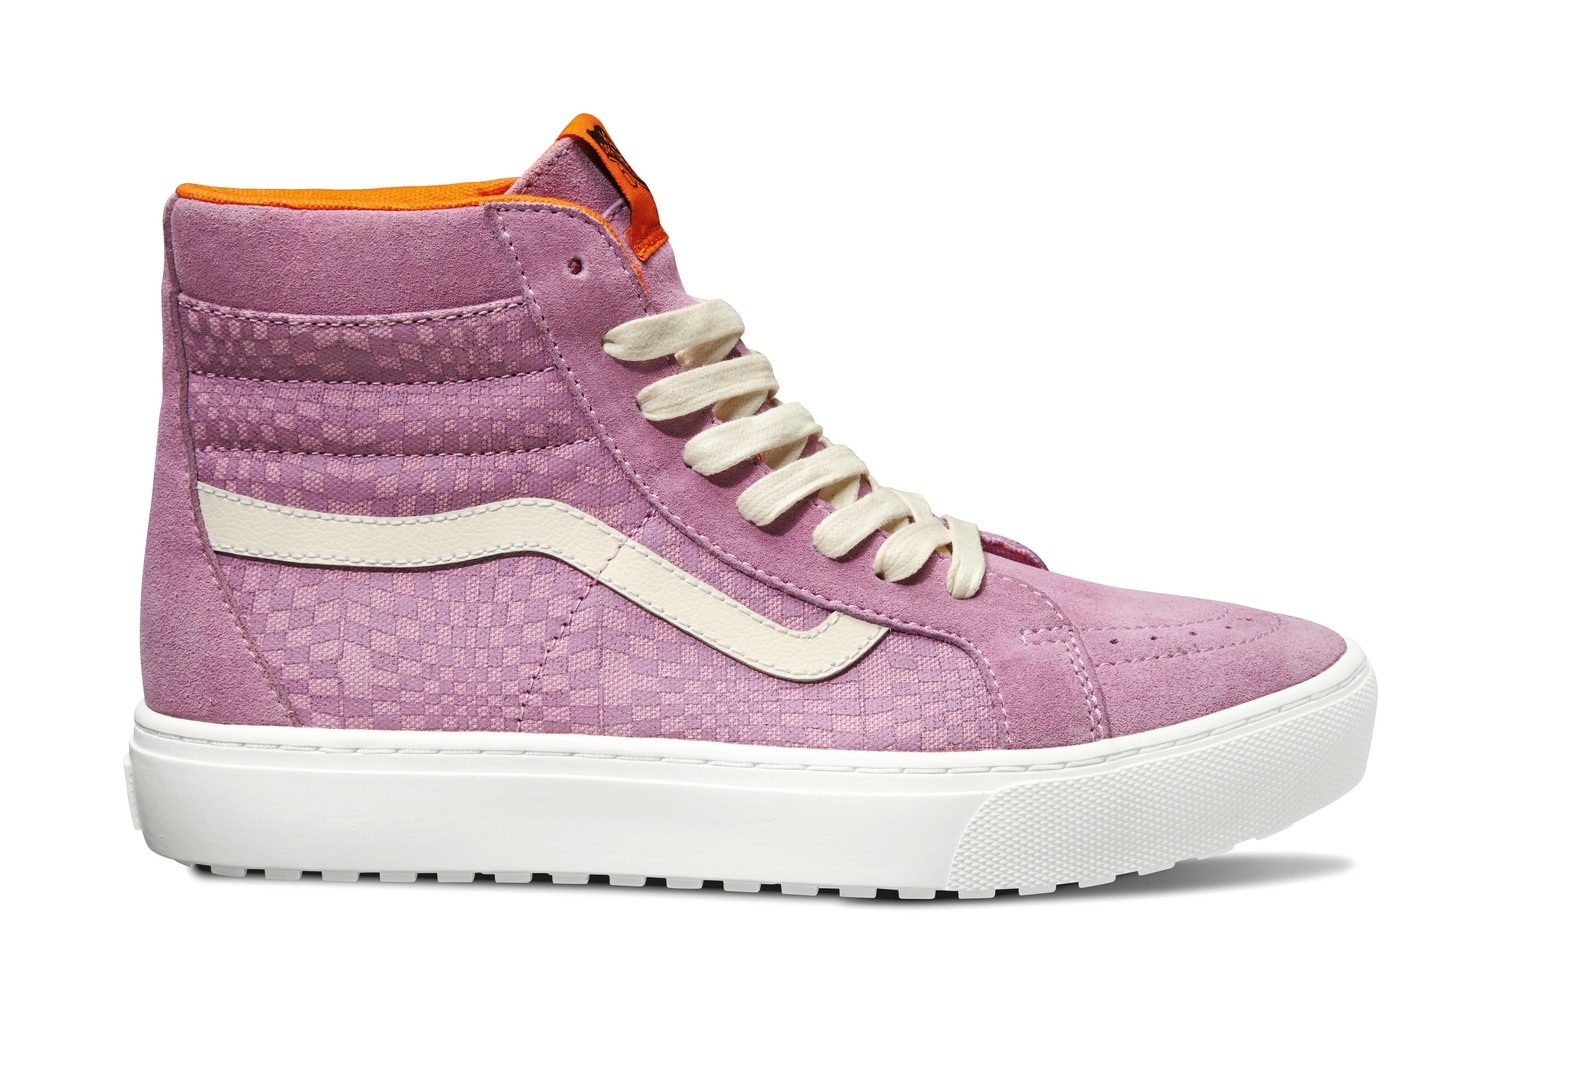 7ae326d99b Vault by Vans x London Undercover - 4ActionSport